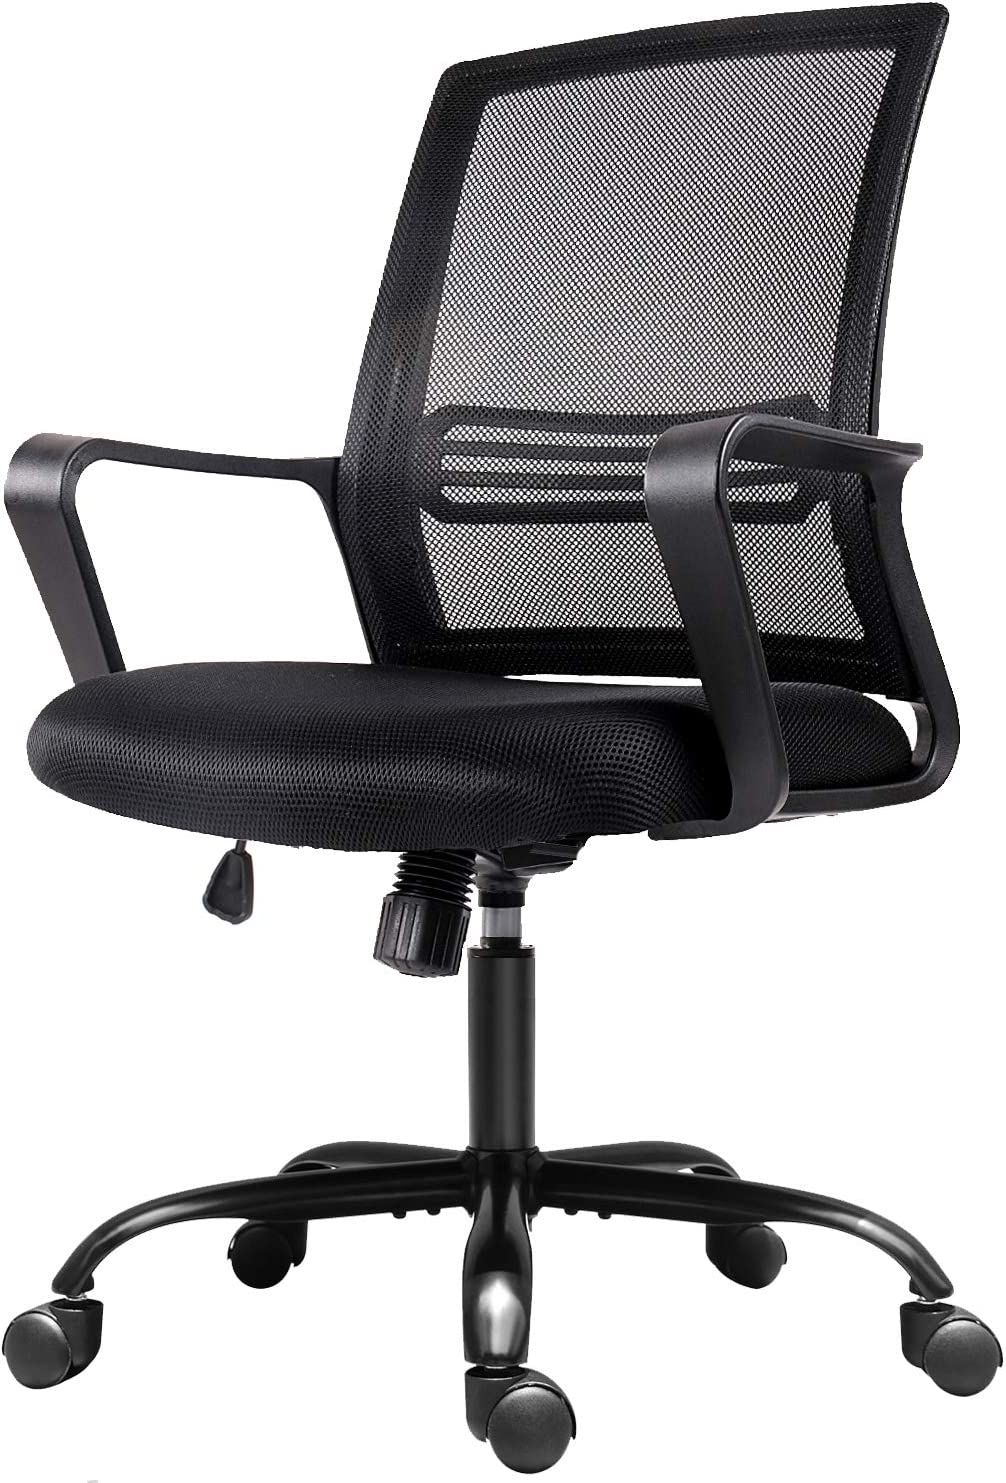 Amazon Com Office Chair Mesh Office Computer Swivel Desk Task Chair Ergonomic Executive Chair With Armrests Furniture Decor